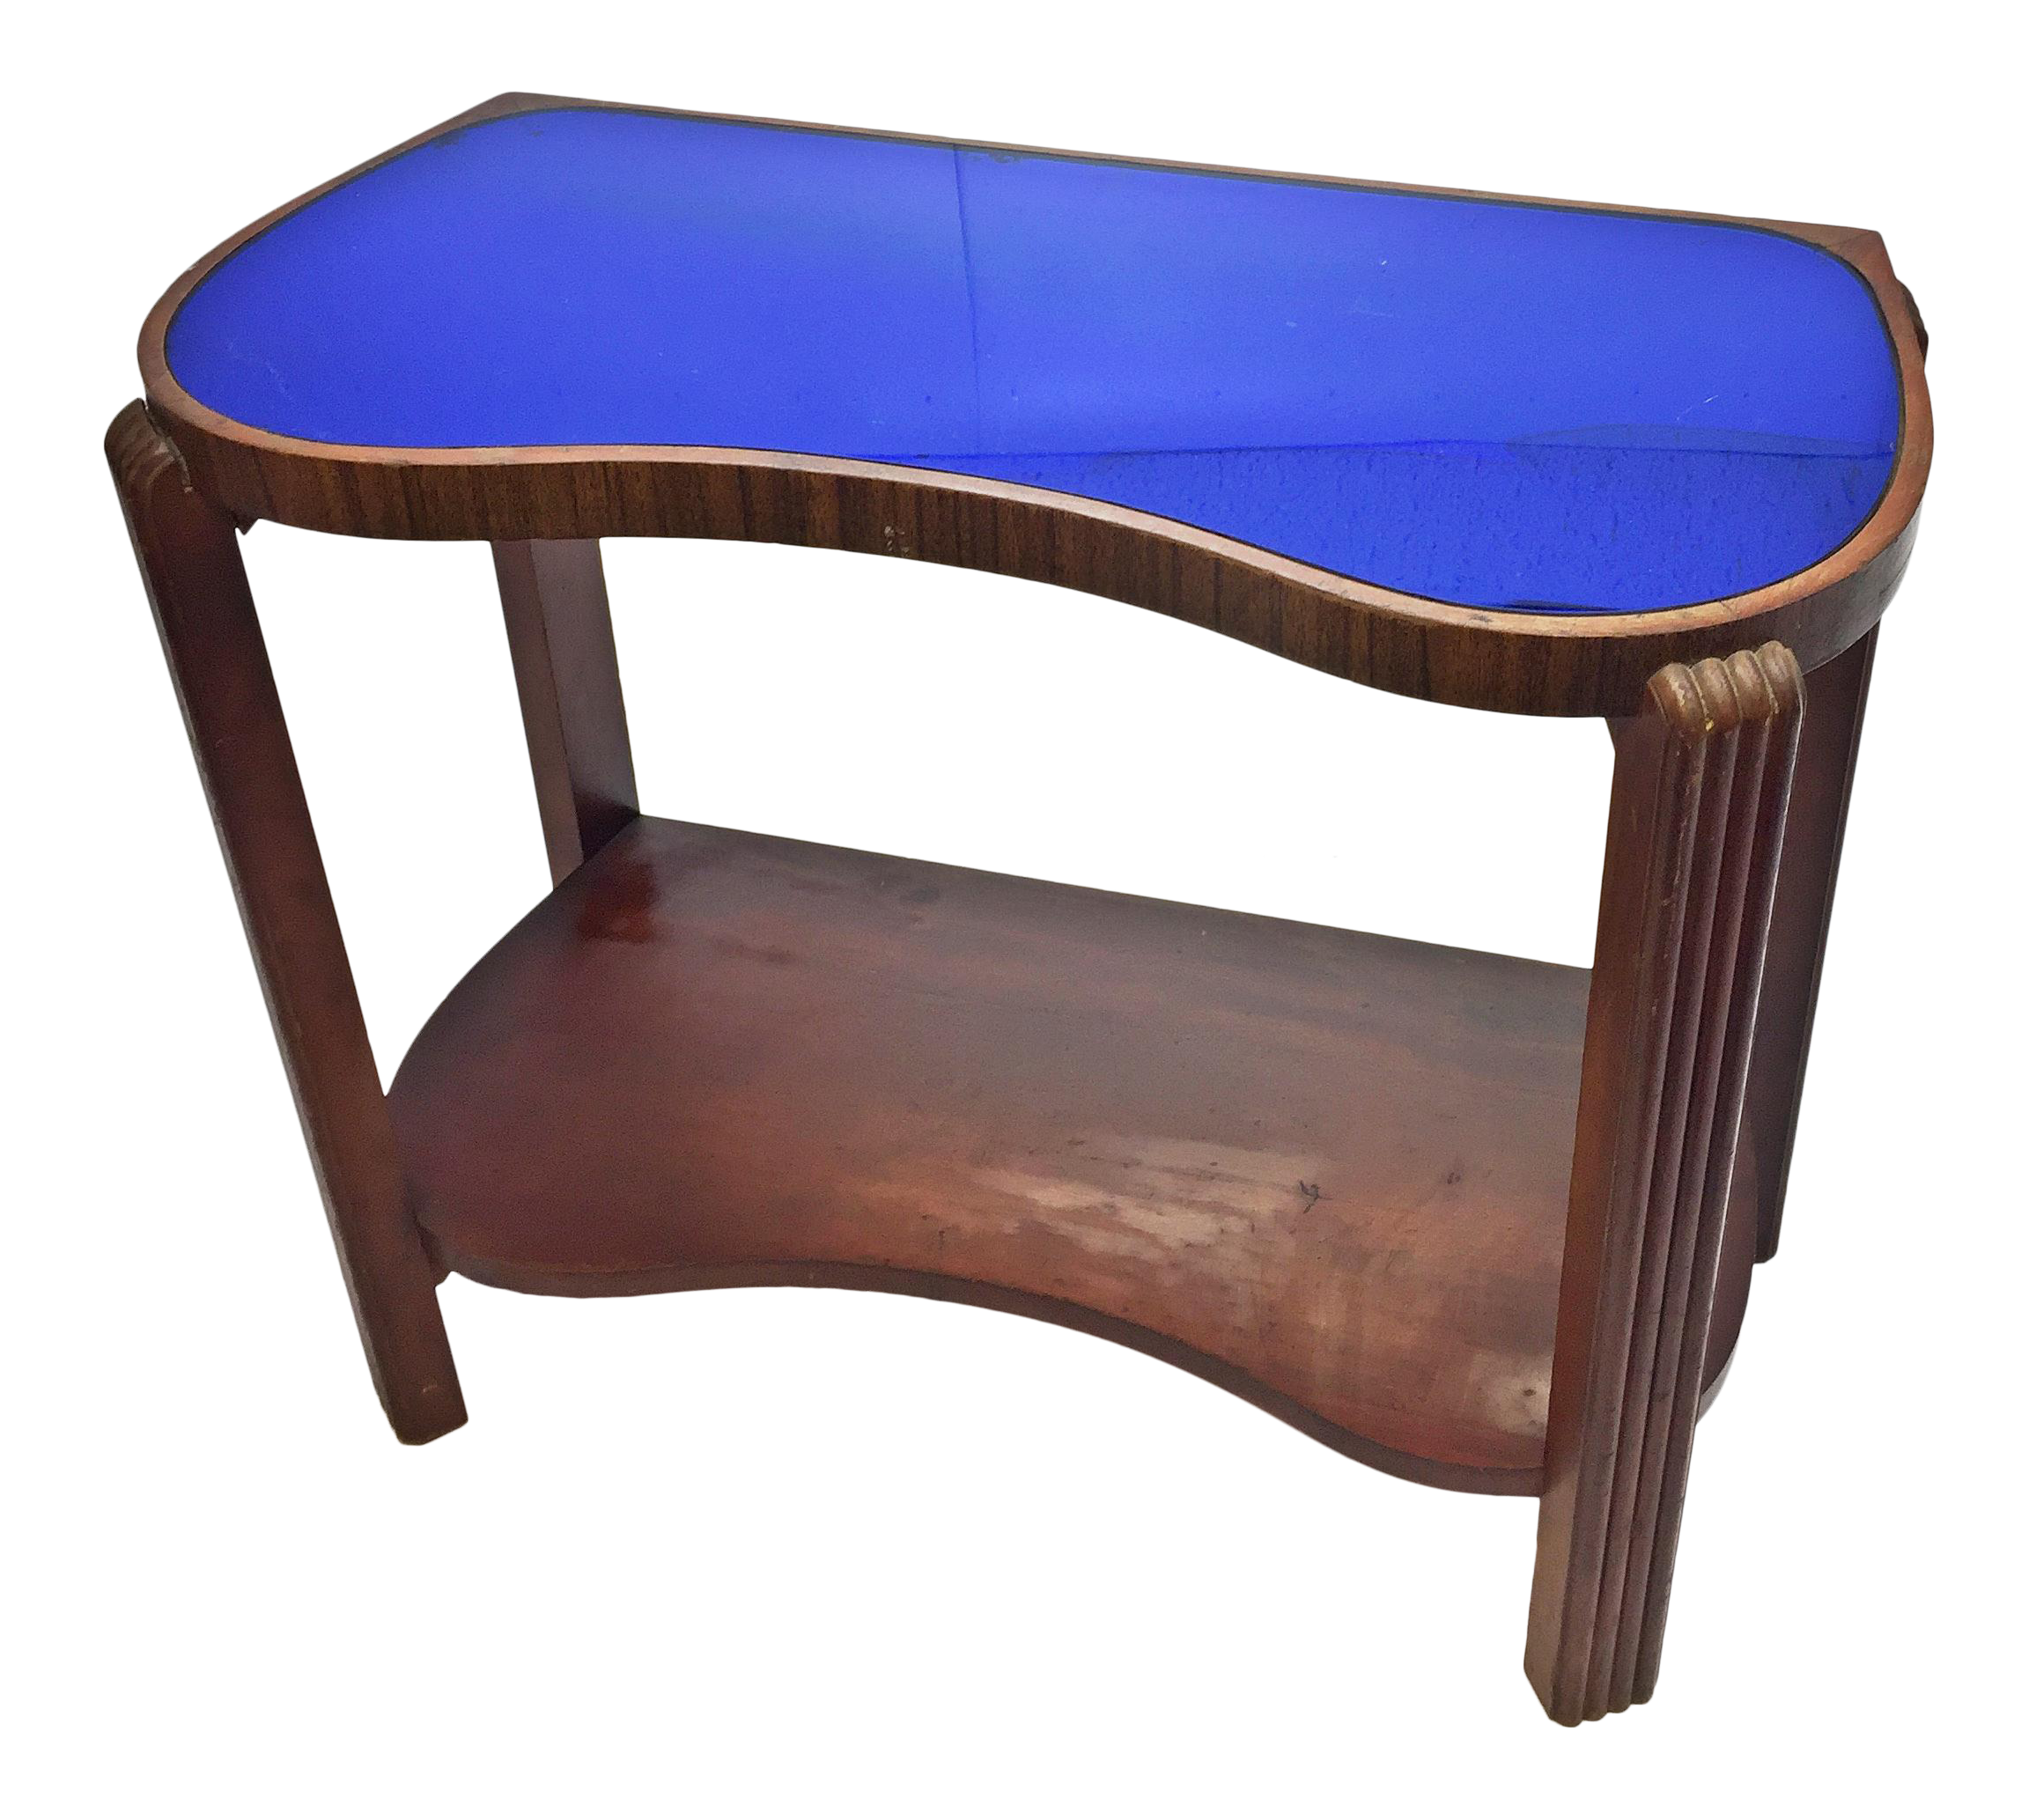 Art Deco Kidney Shaped Cocktail Table with Blue Mirrored Glass Top